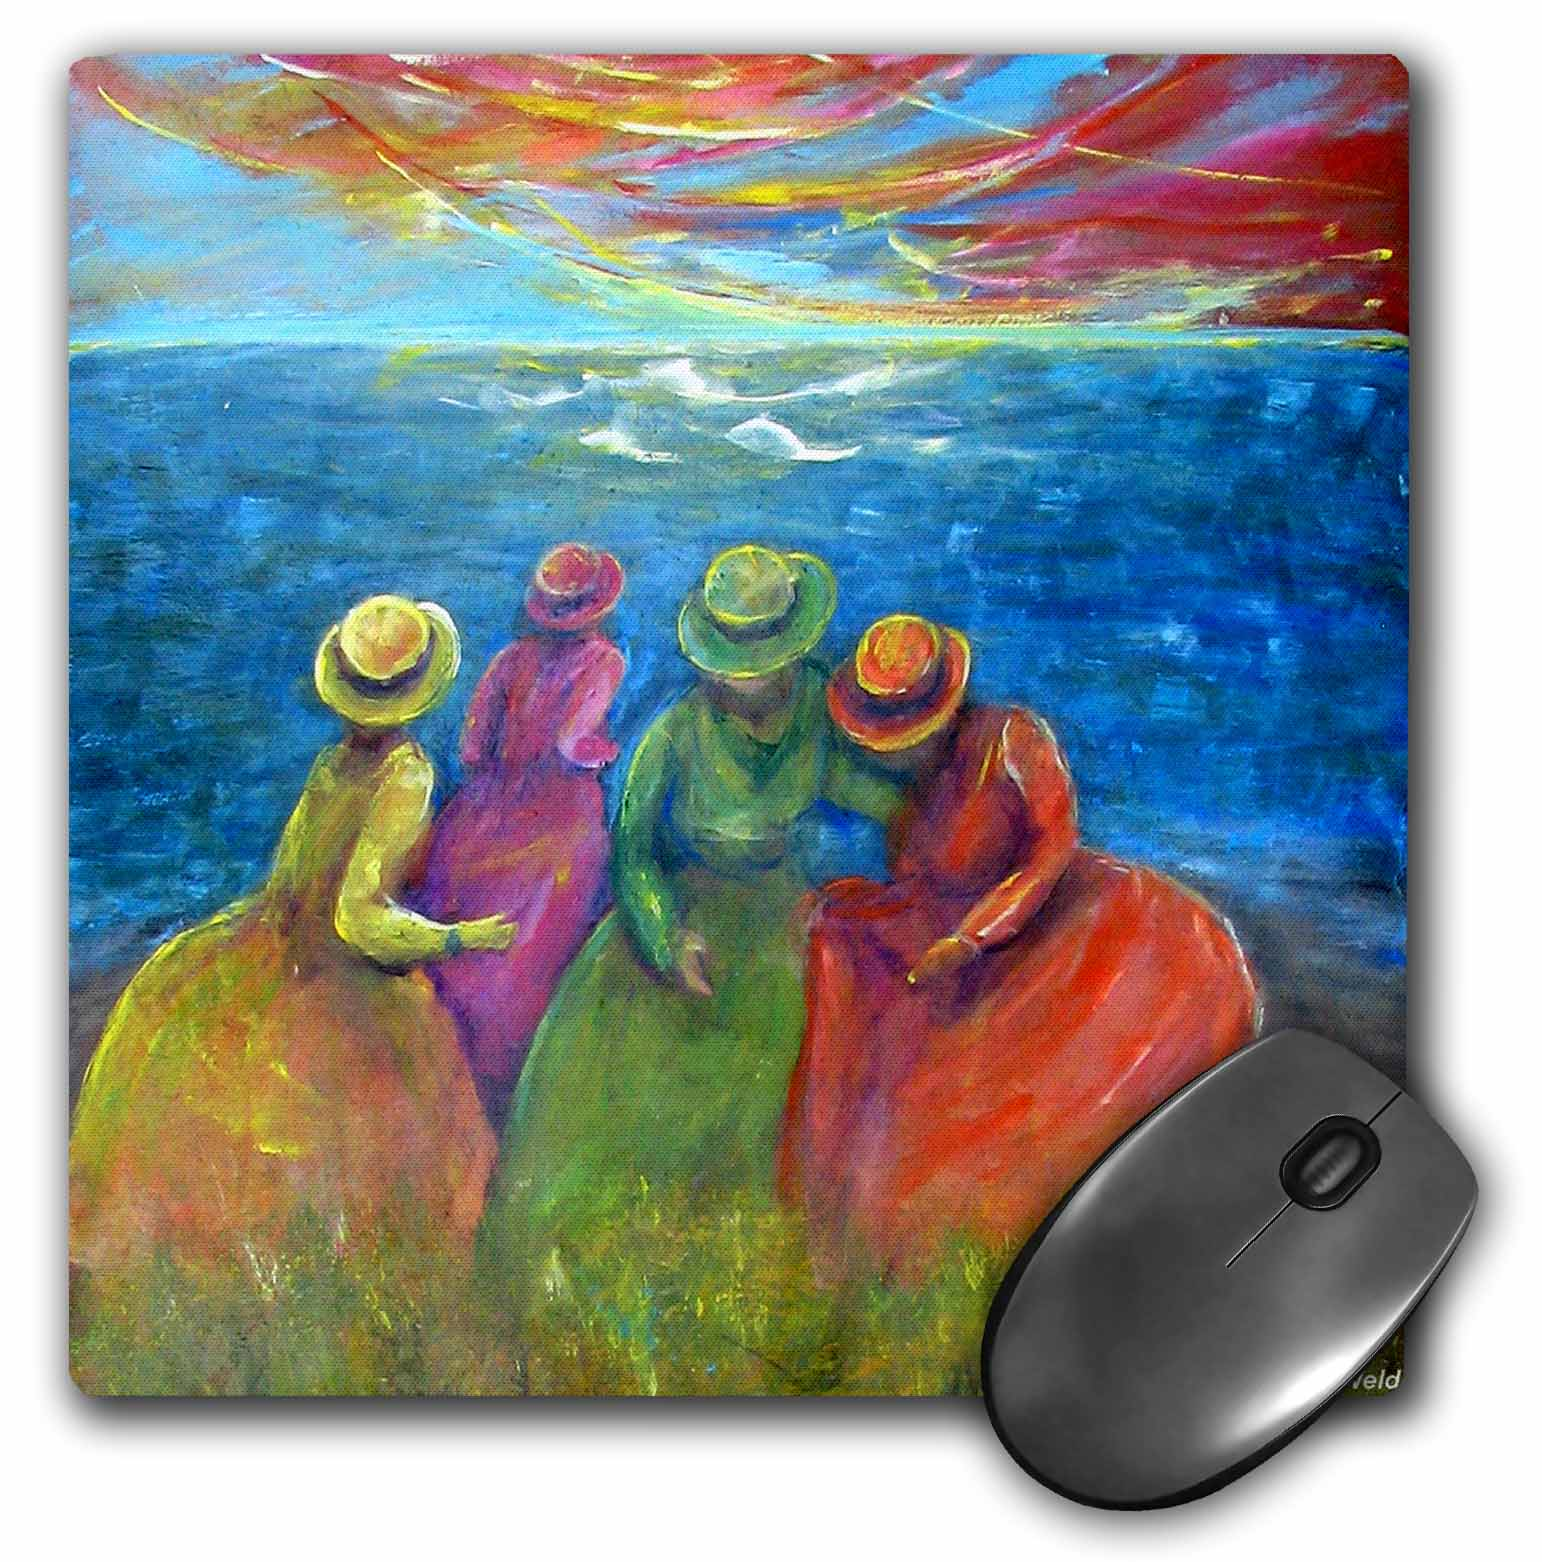 3dRose Frolic, 4 seaside sisters visit the seascoast, Mouse Pad, 8 by 8 inches